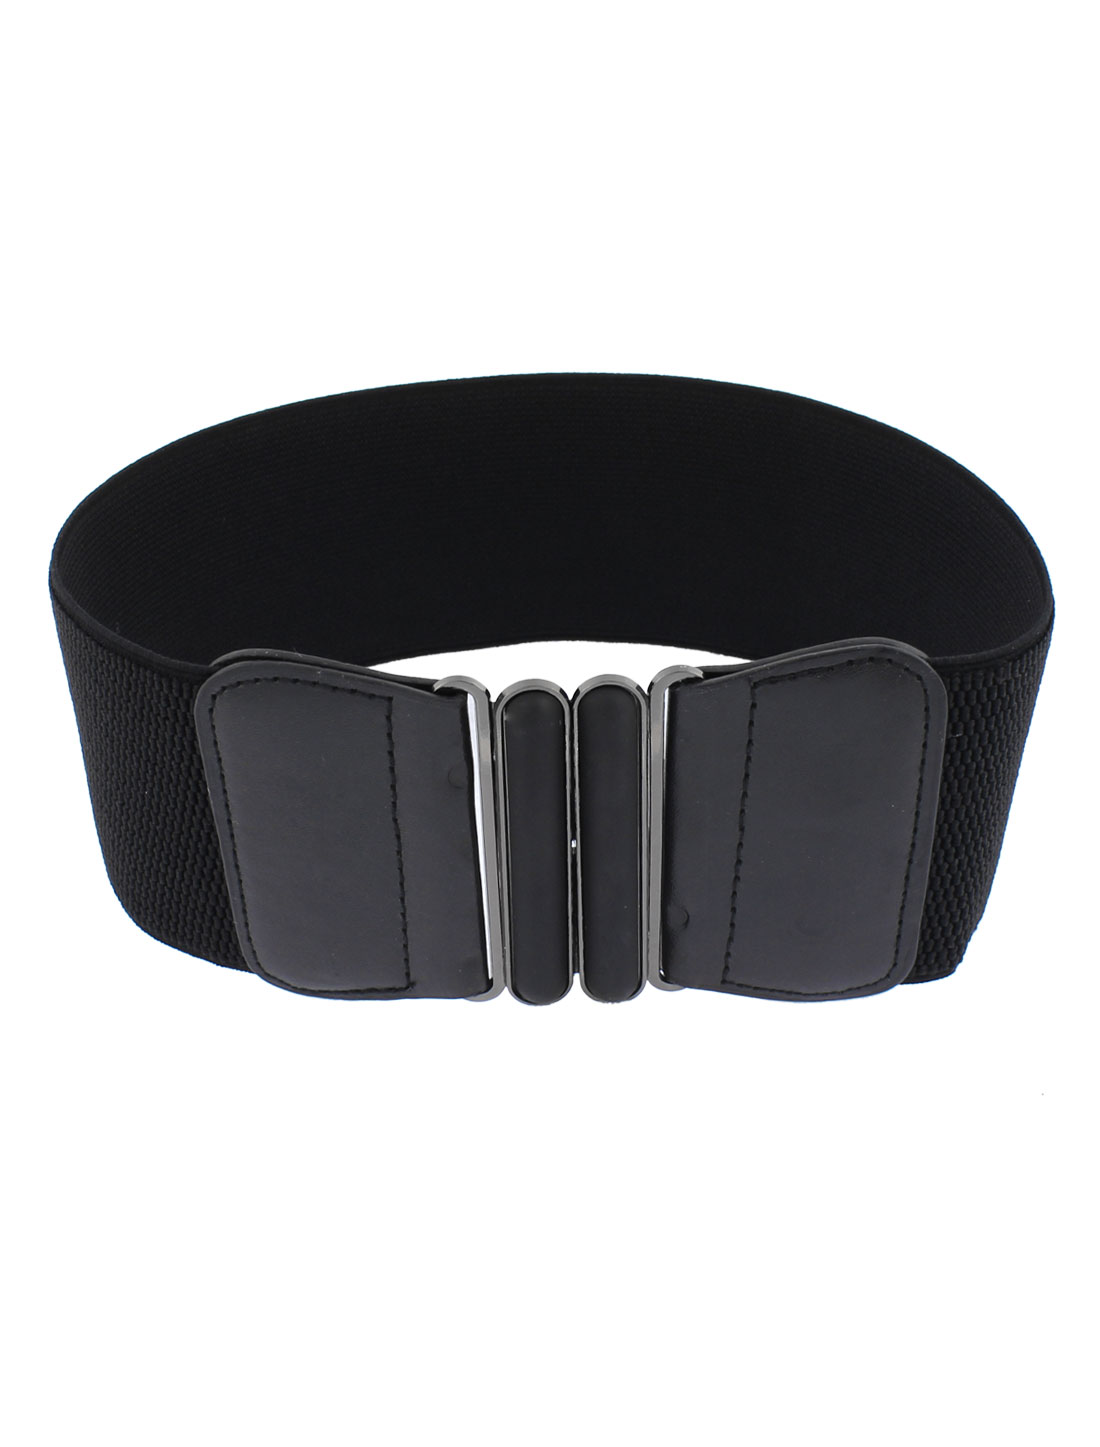 Women Elastic Waist Band Corset Belt Waistband 3 Inch Wide